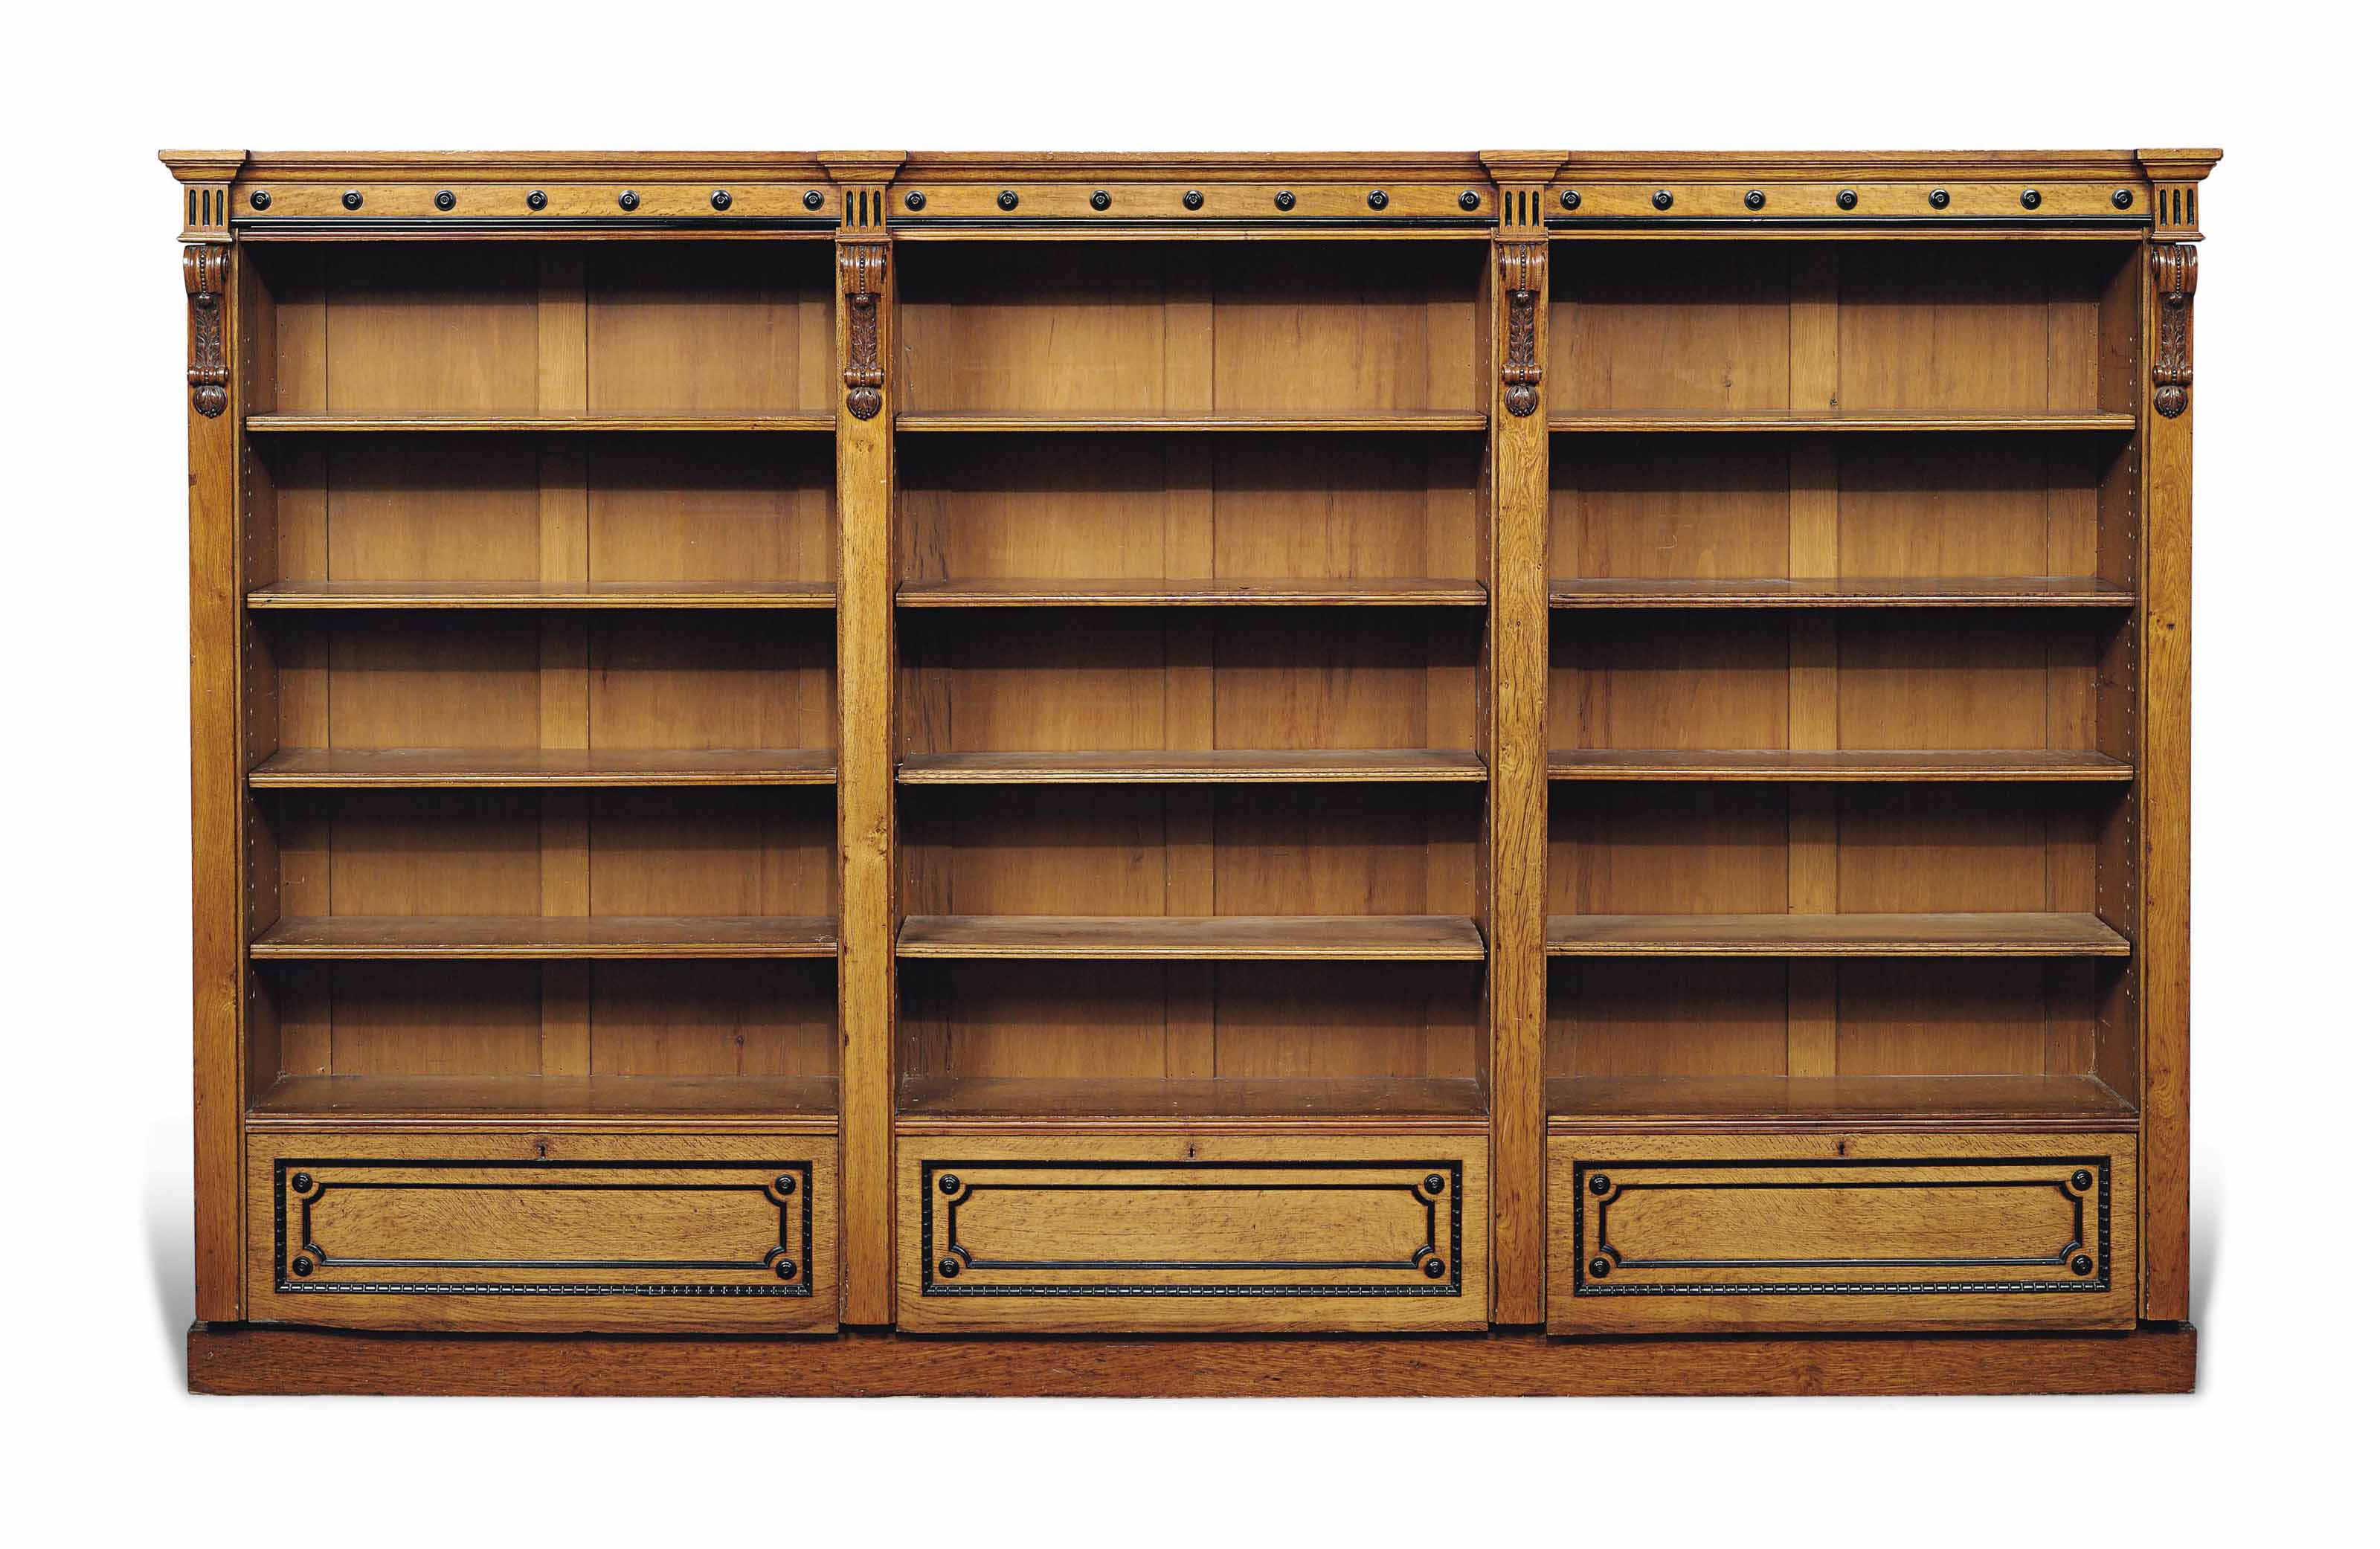 A VICTORIAN OAK AND EBONY OPEN BOOKCASE